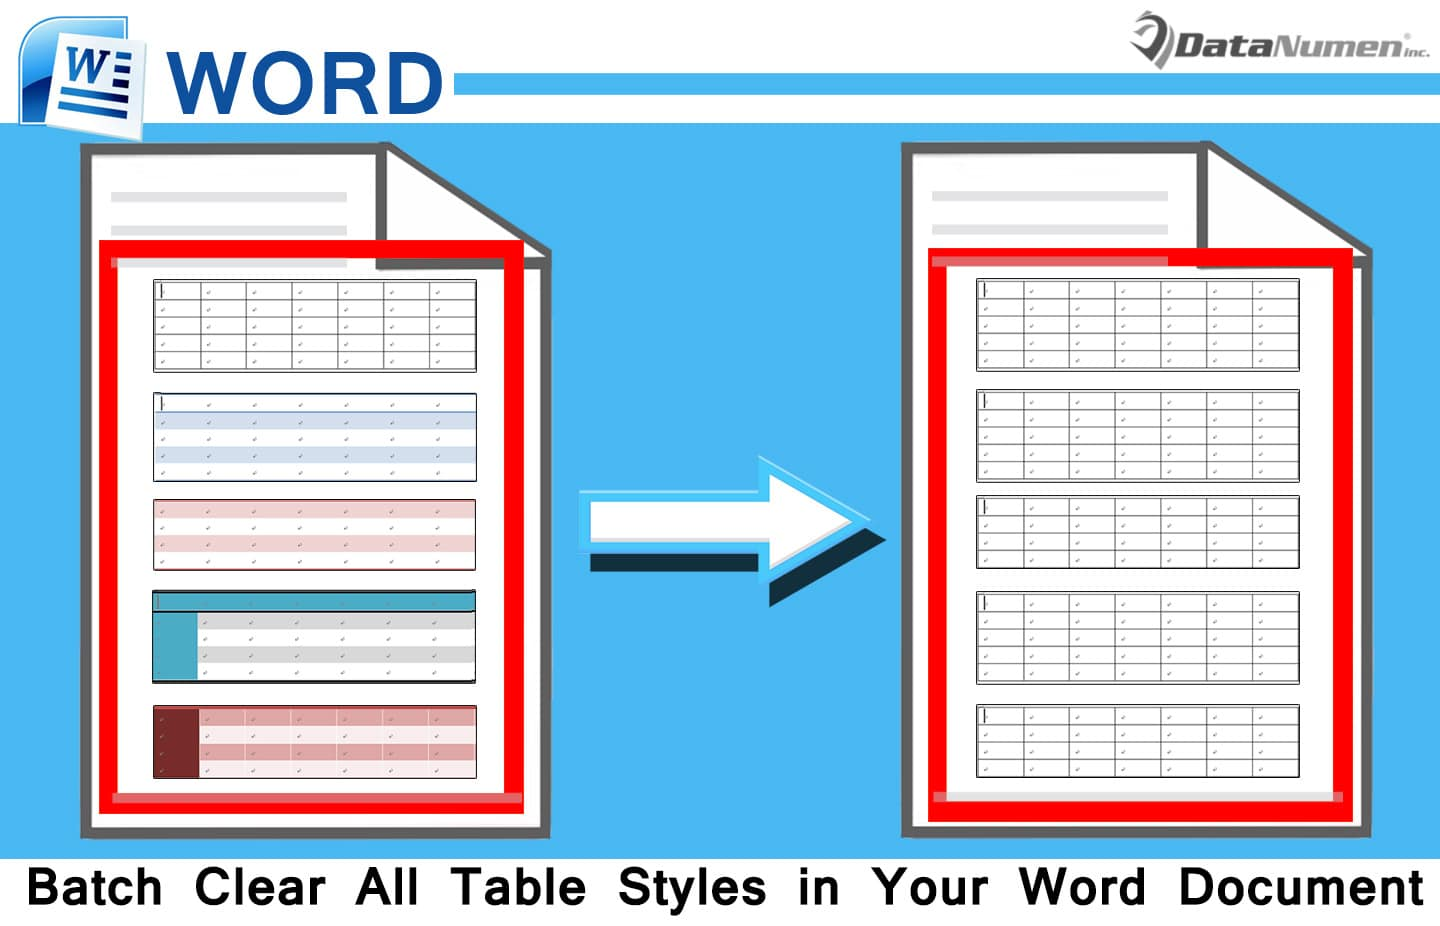 in a word document a style is